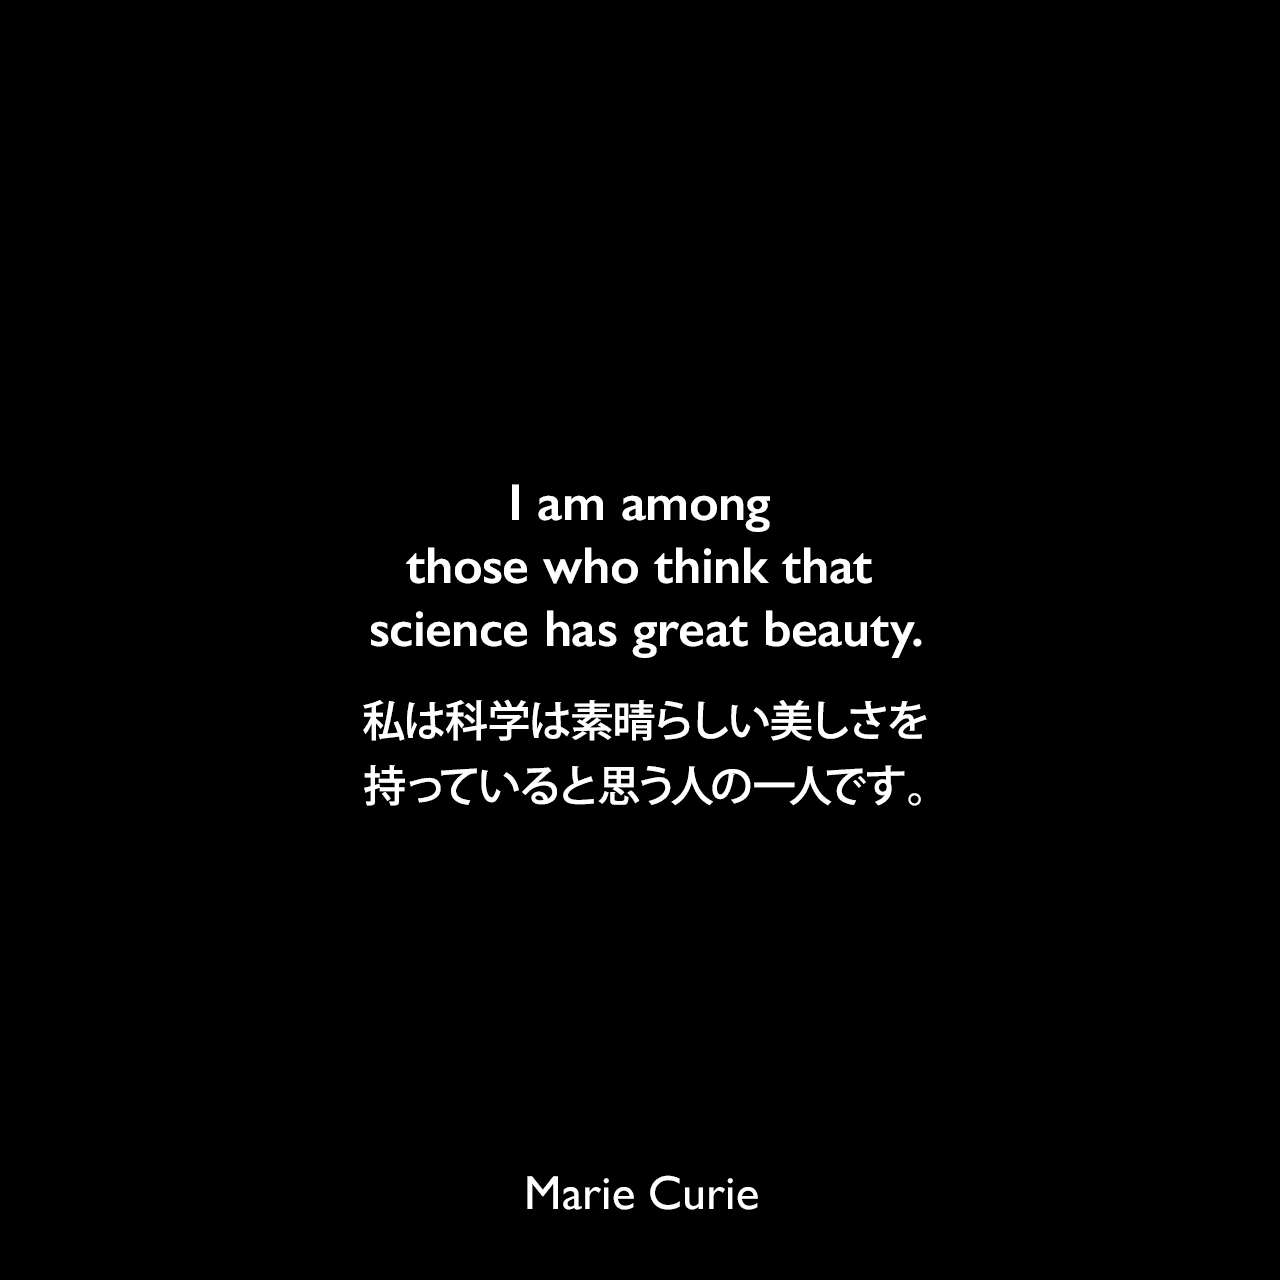 I am among those who think that science has great beauty.私は科学は素晴らしい美しさを持っていると思う人の一人です。- マリの次女 エーヴ・キュリーによる本「Madame Curie : A Biography」よりMarie Curie